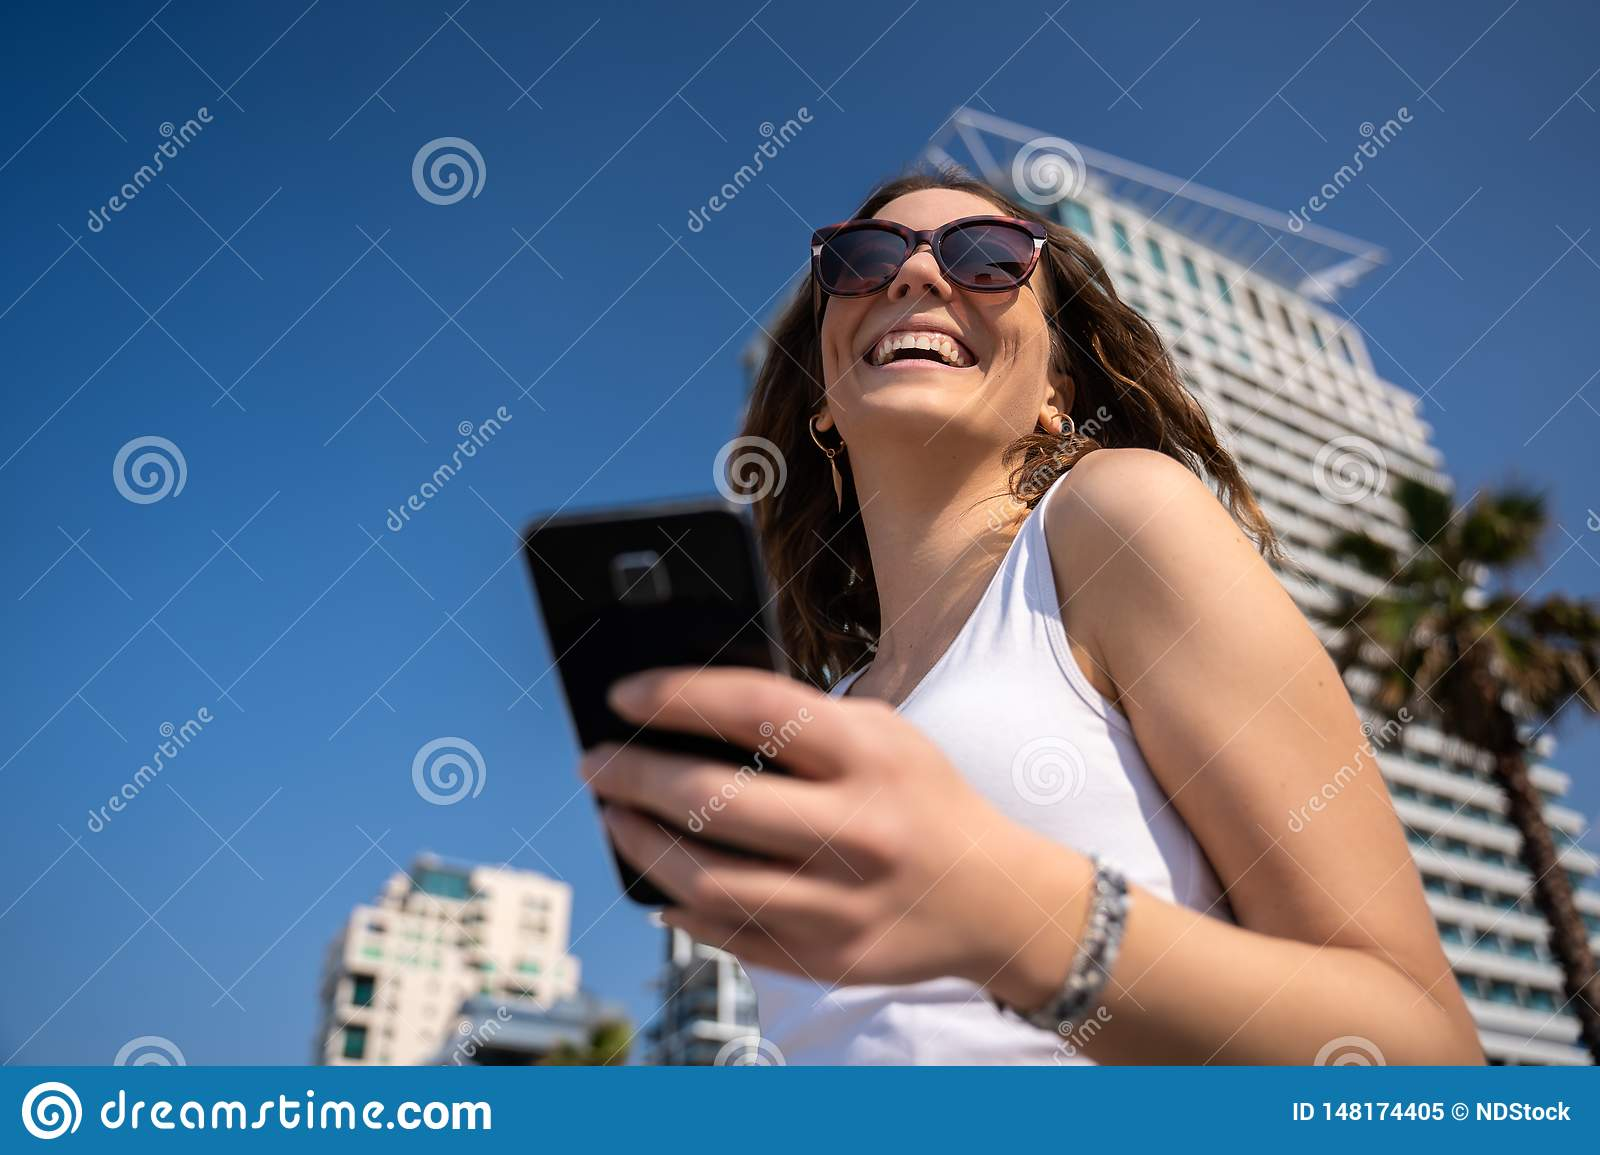 Young woman using the phone. City Skyline In Background